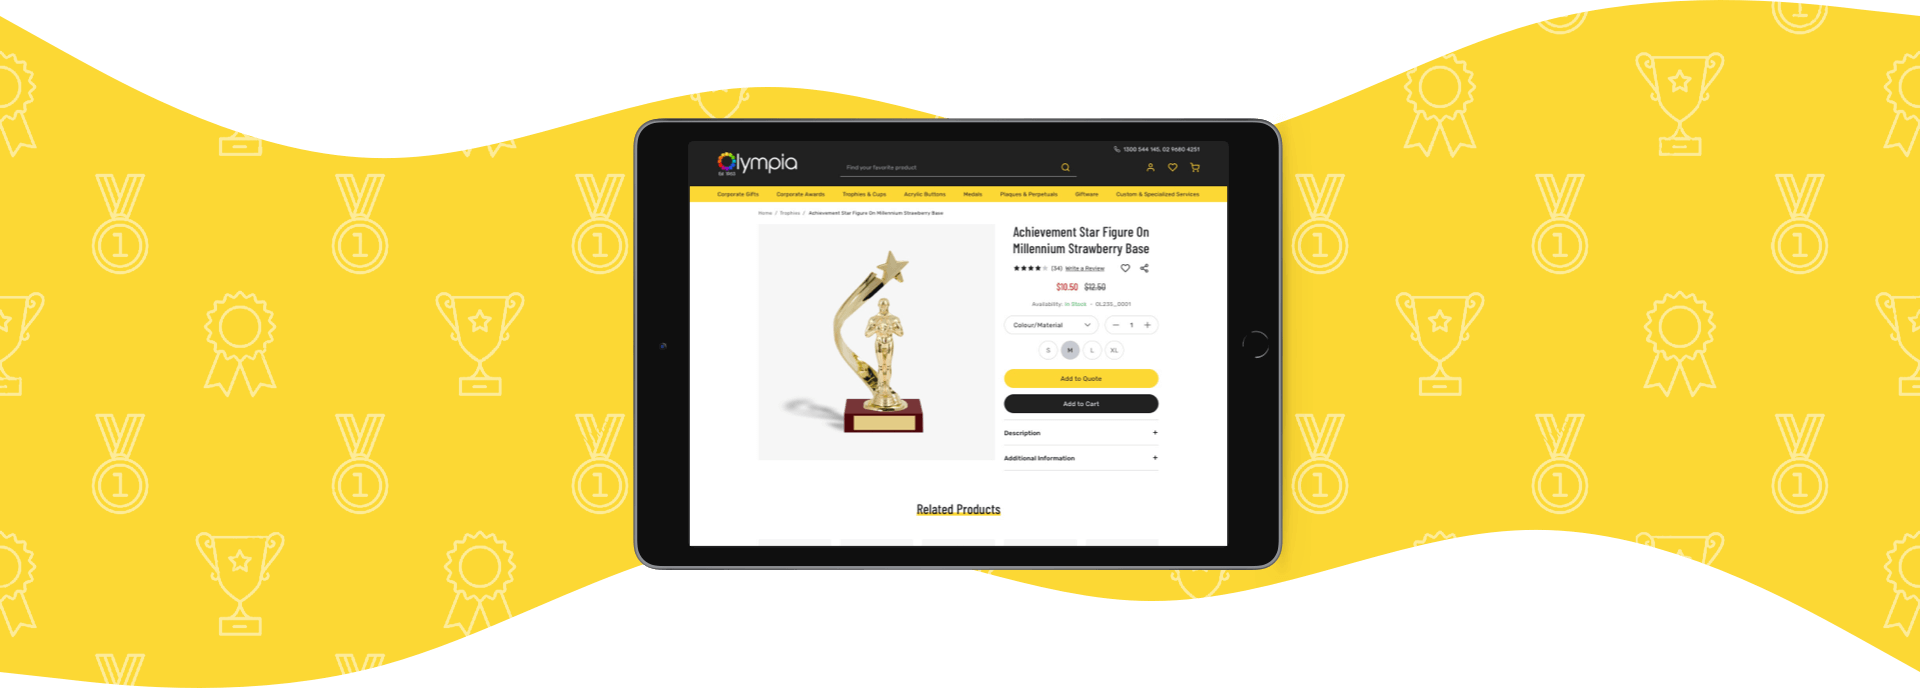 Magento IT Solution Olympia – Casestudy